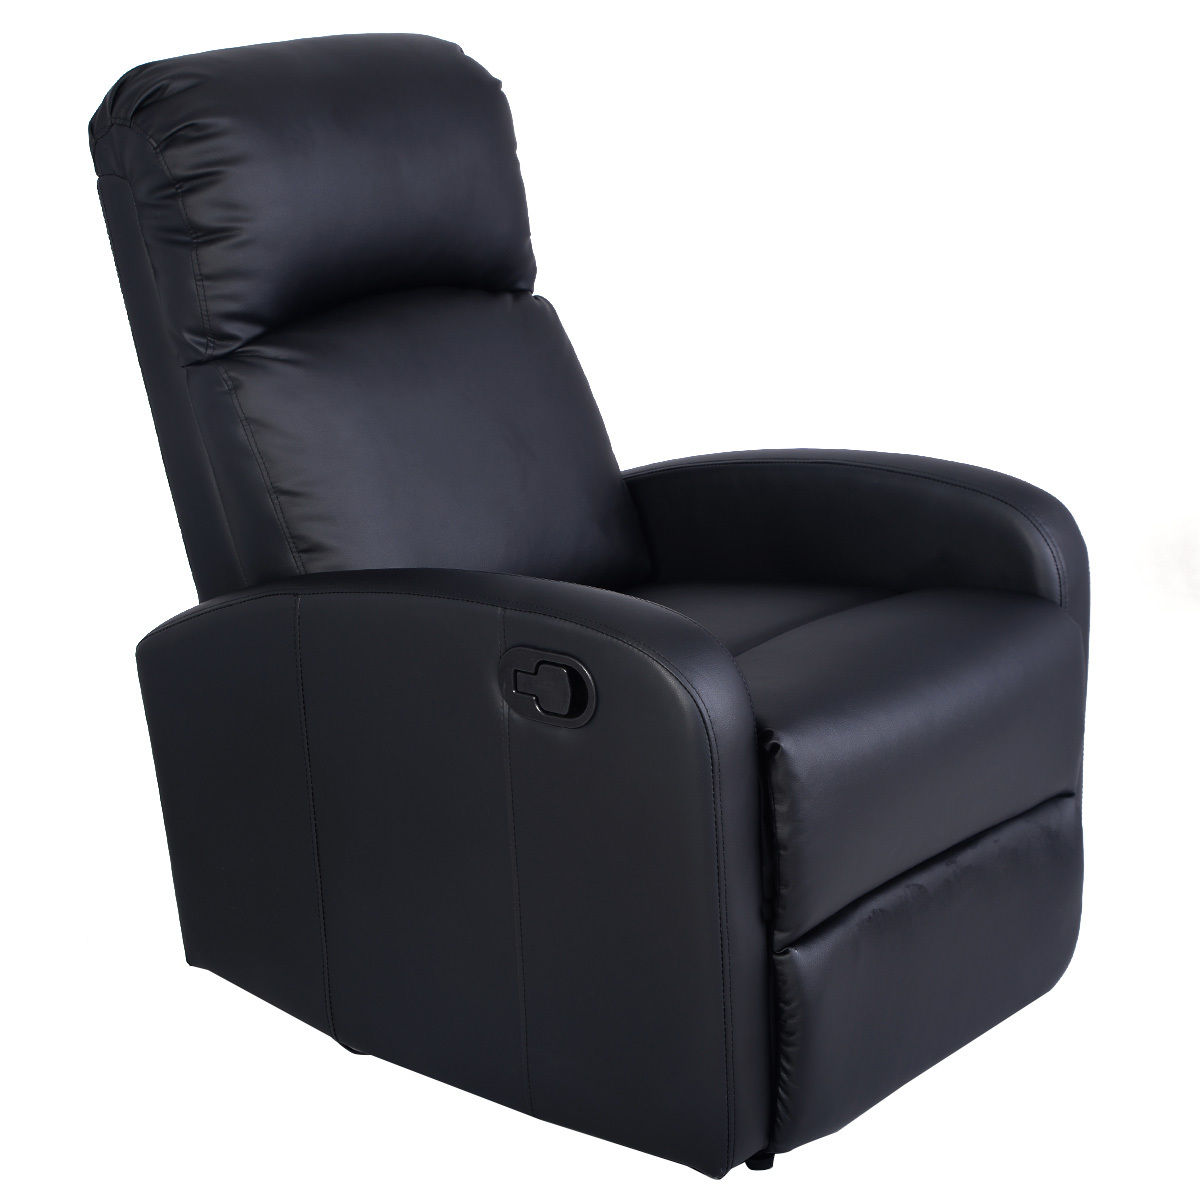 Giantex Manual Recliner Sofa Chair Black Home Living Room Lounger Leather Sofa Seat Theater Leisure Recliner Single Sofa HW51431